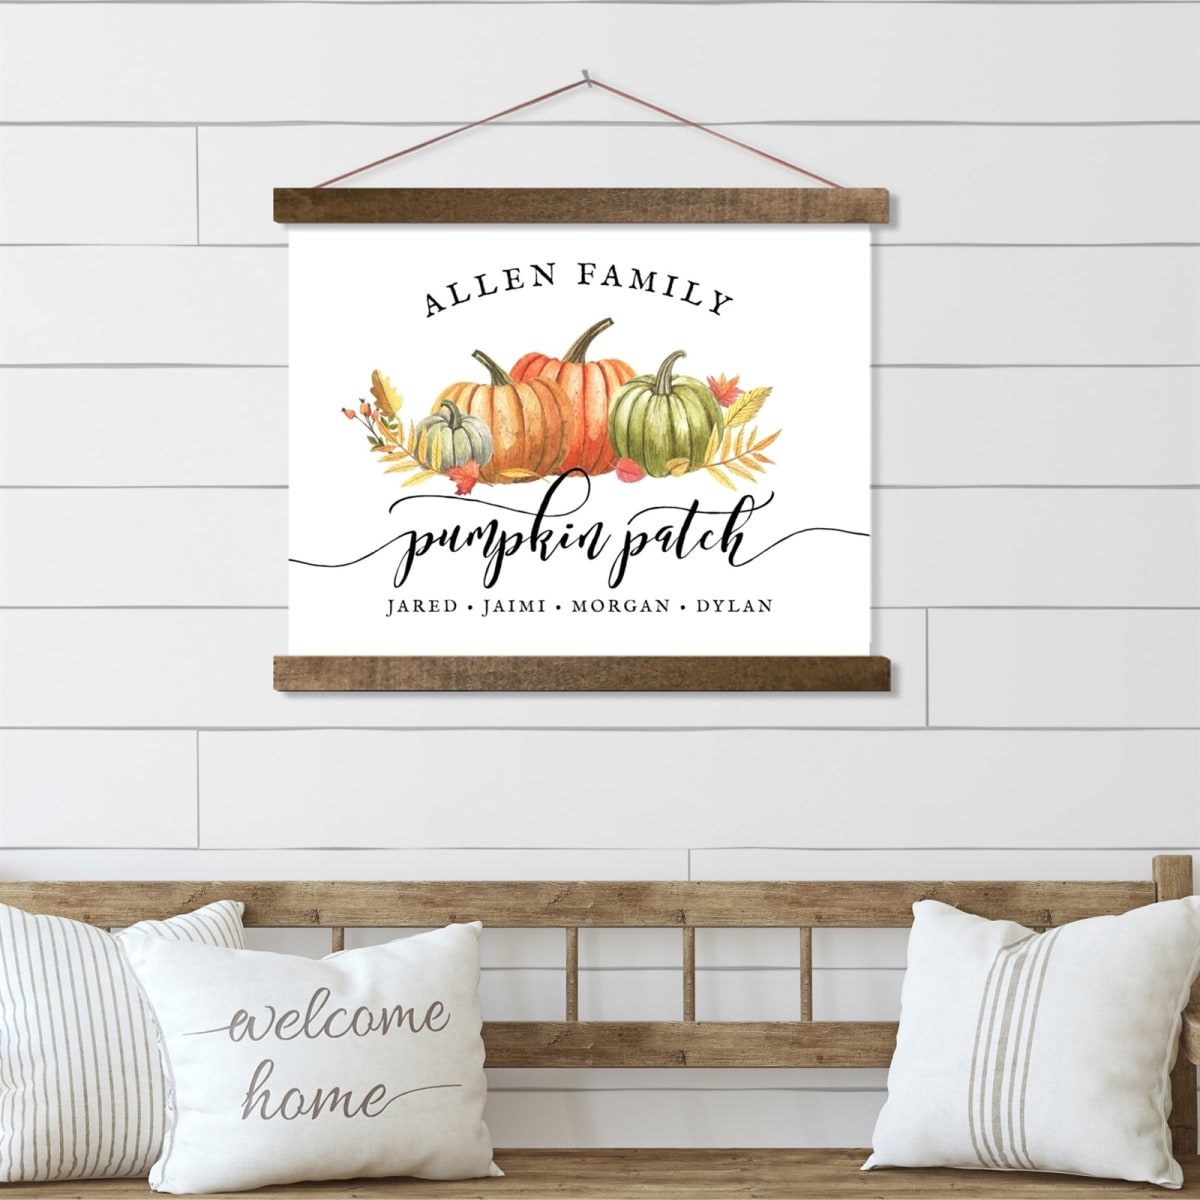 Custom Pumpkin Patch Sign   Canvas With Wood Frame! .99 (REG .00) + Free Shipping at Jane!